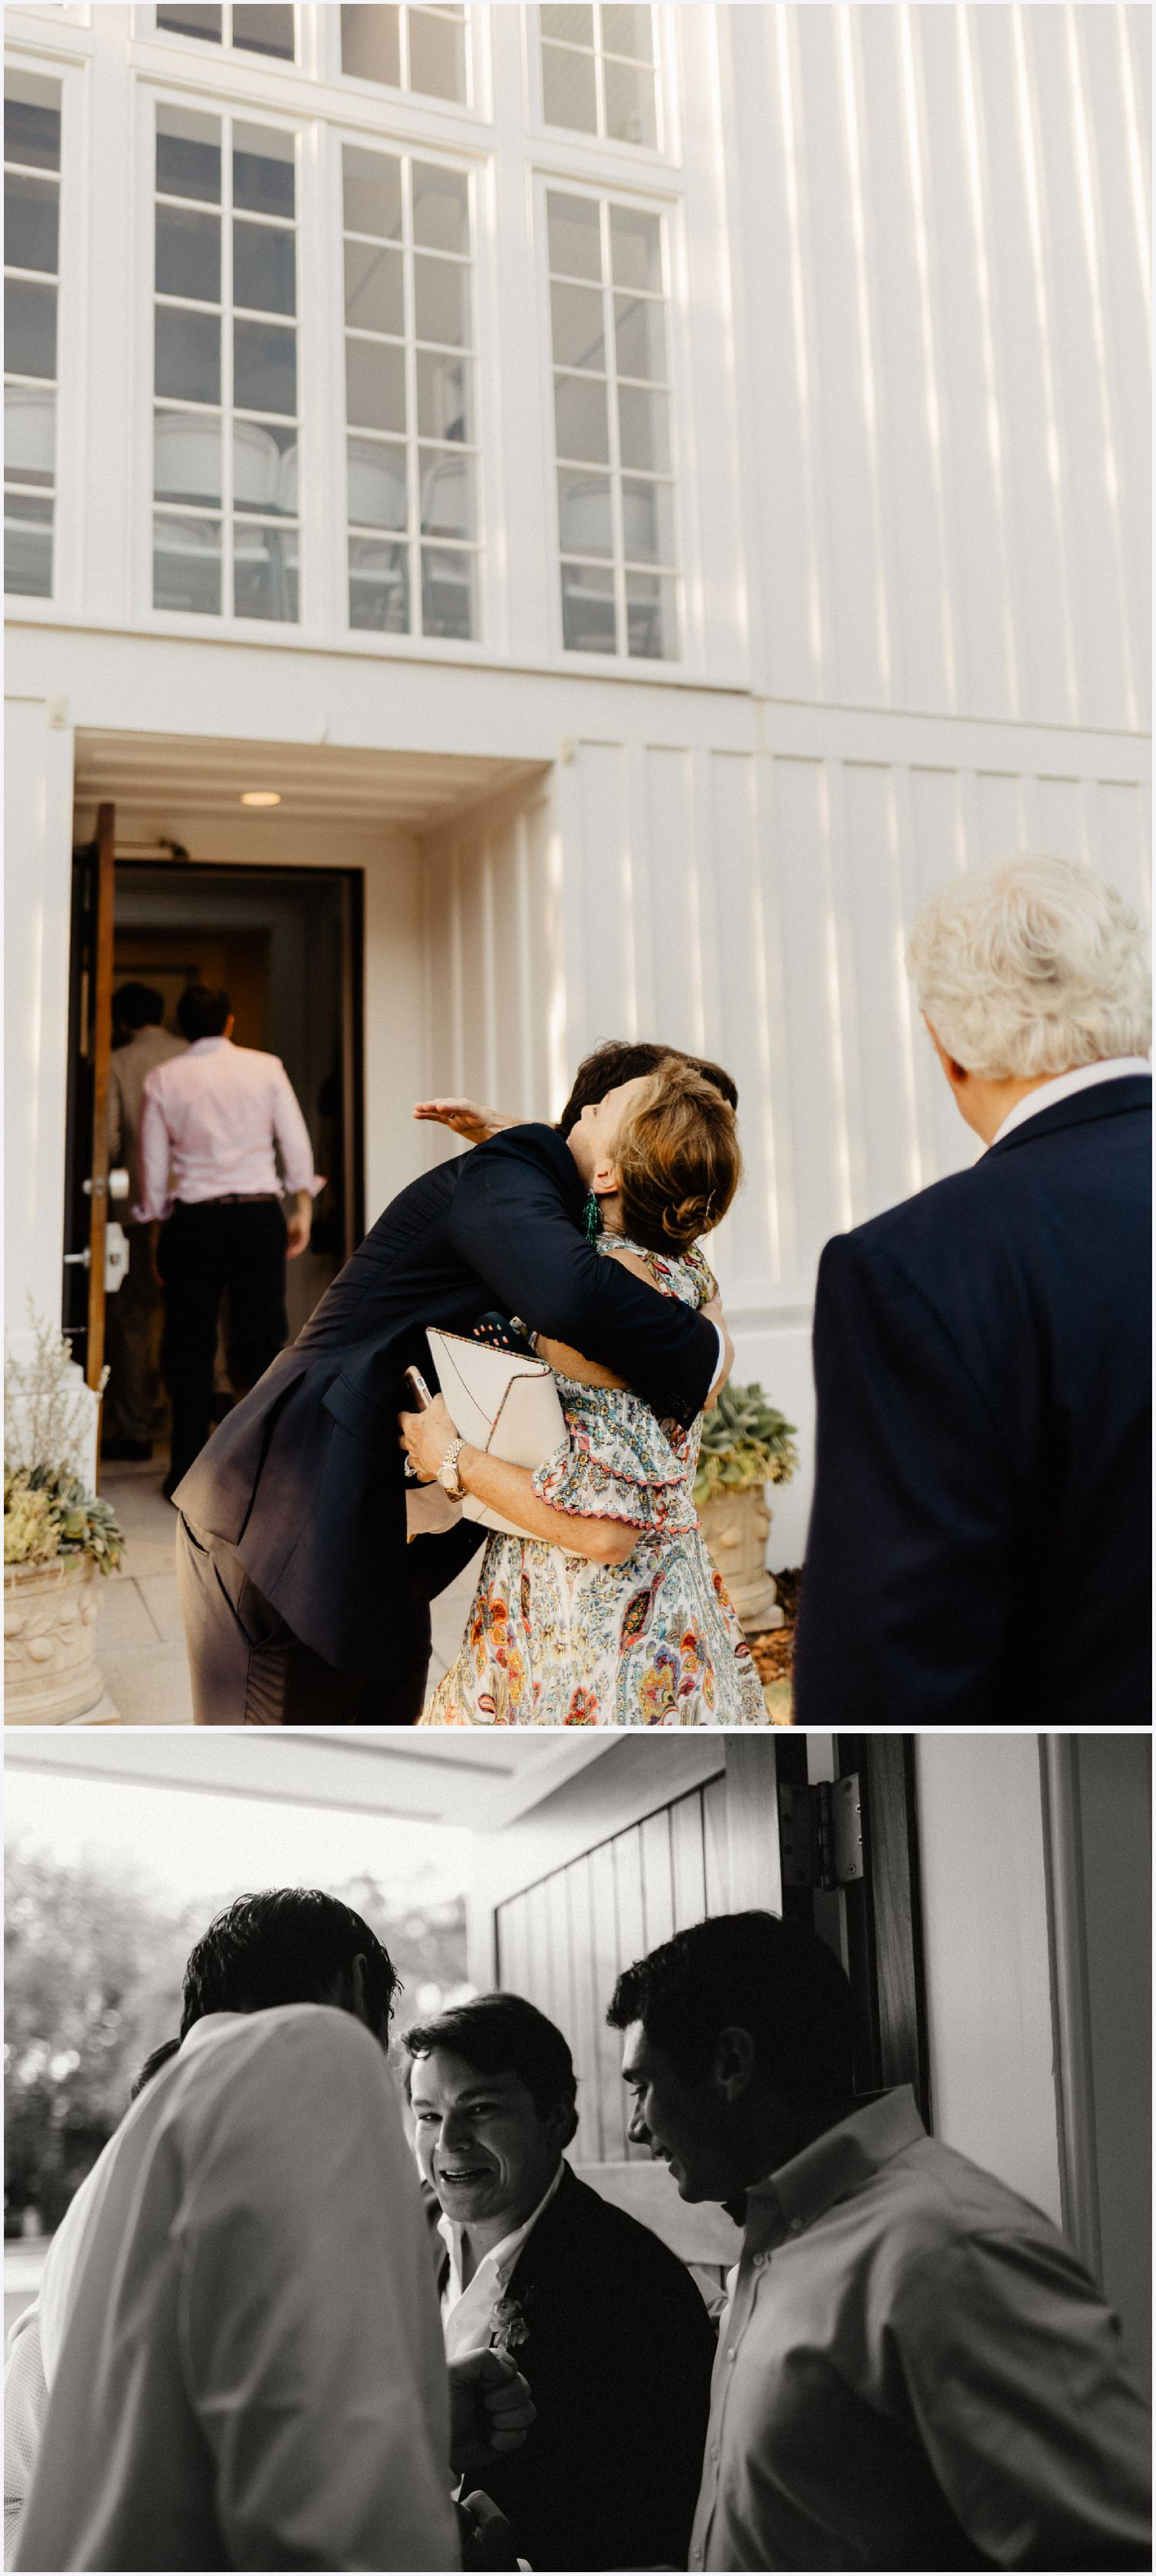 Guests arriving to the Seaside Chapel wedding